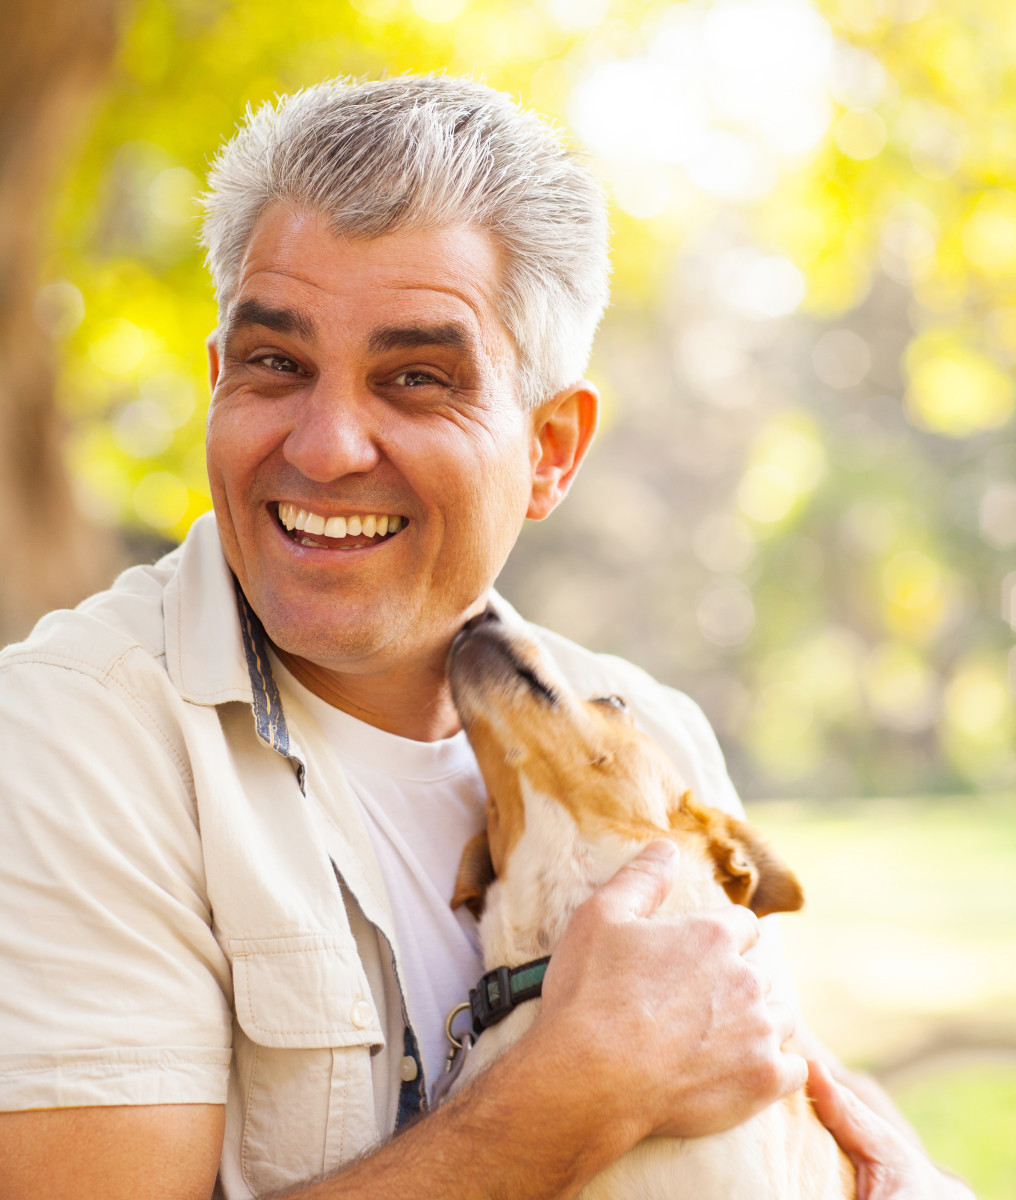 Gay Therapy LA: The Healthy Aging Project for Gay Men